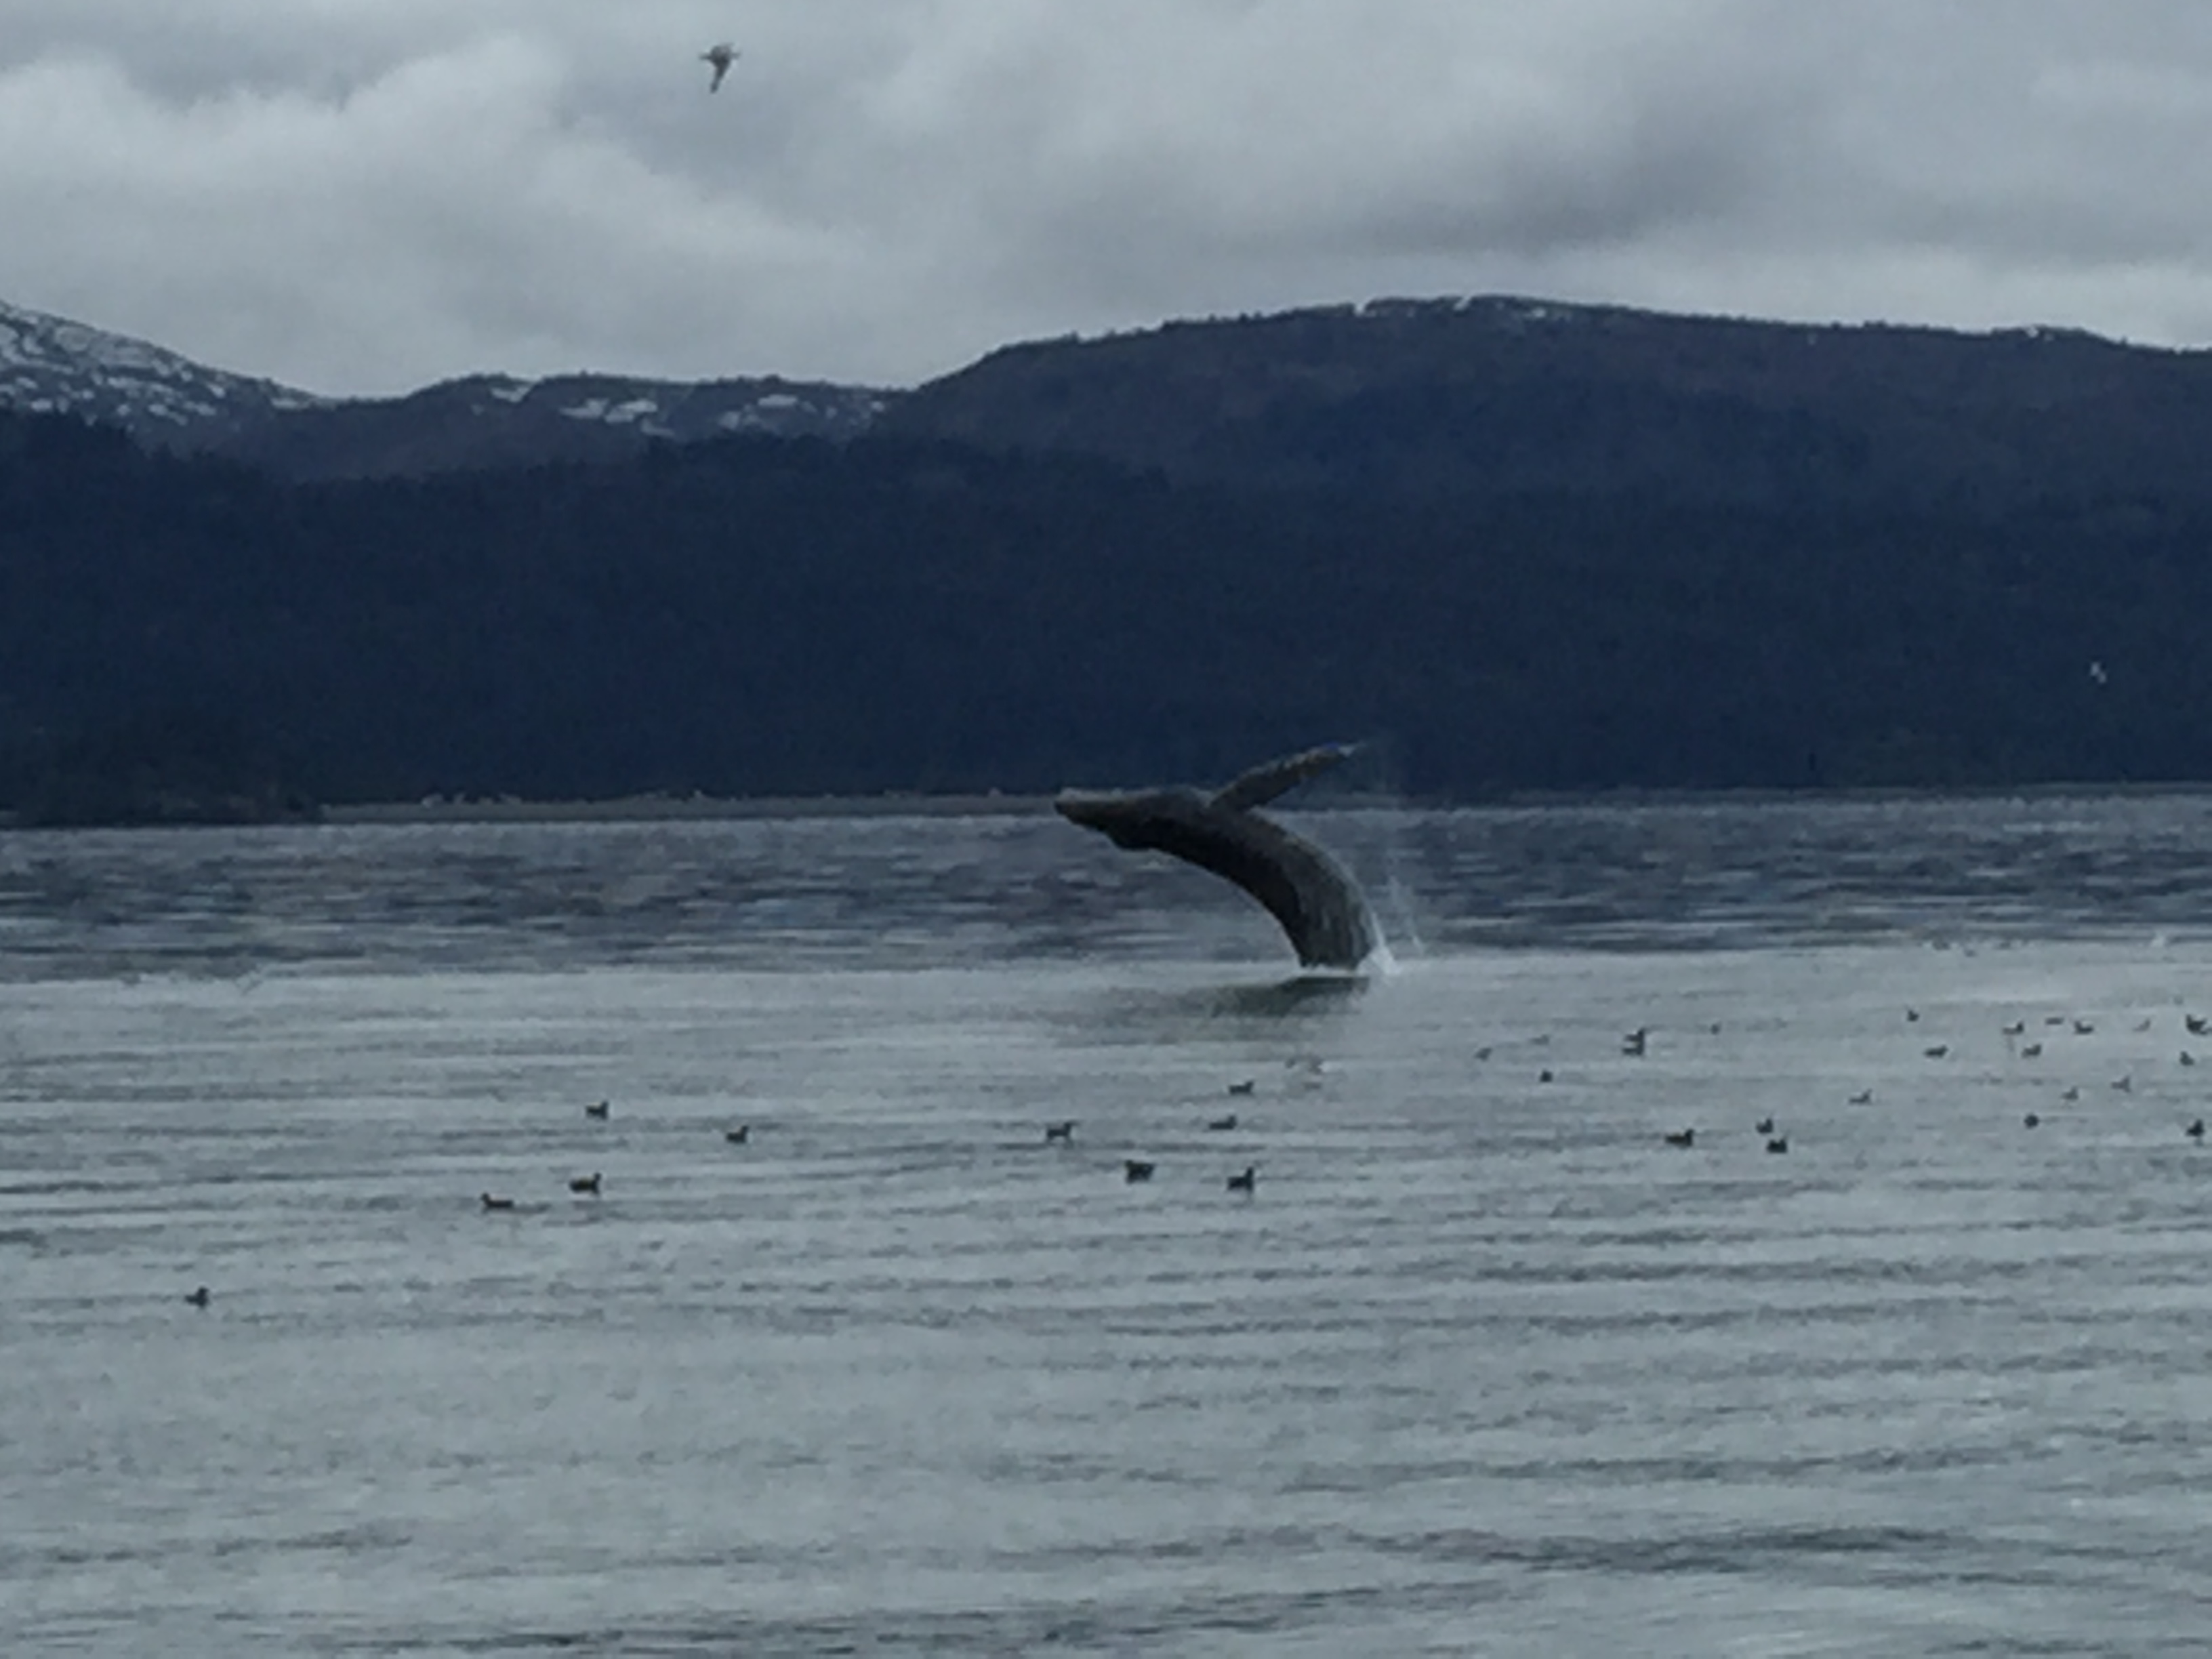 Humpback whale breaching majestically on a cloudy day